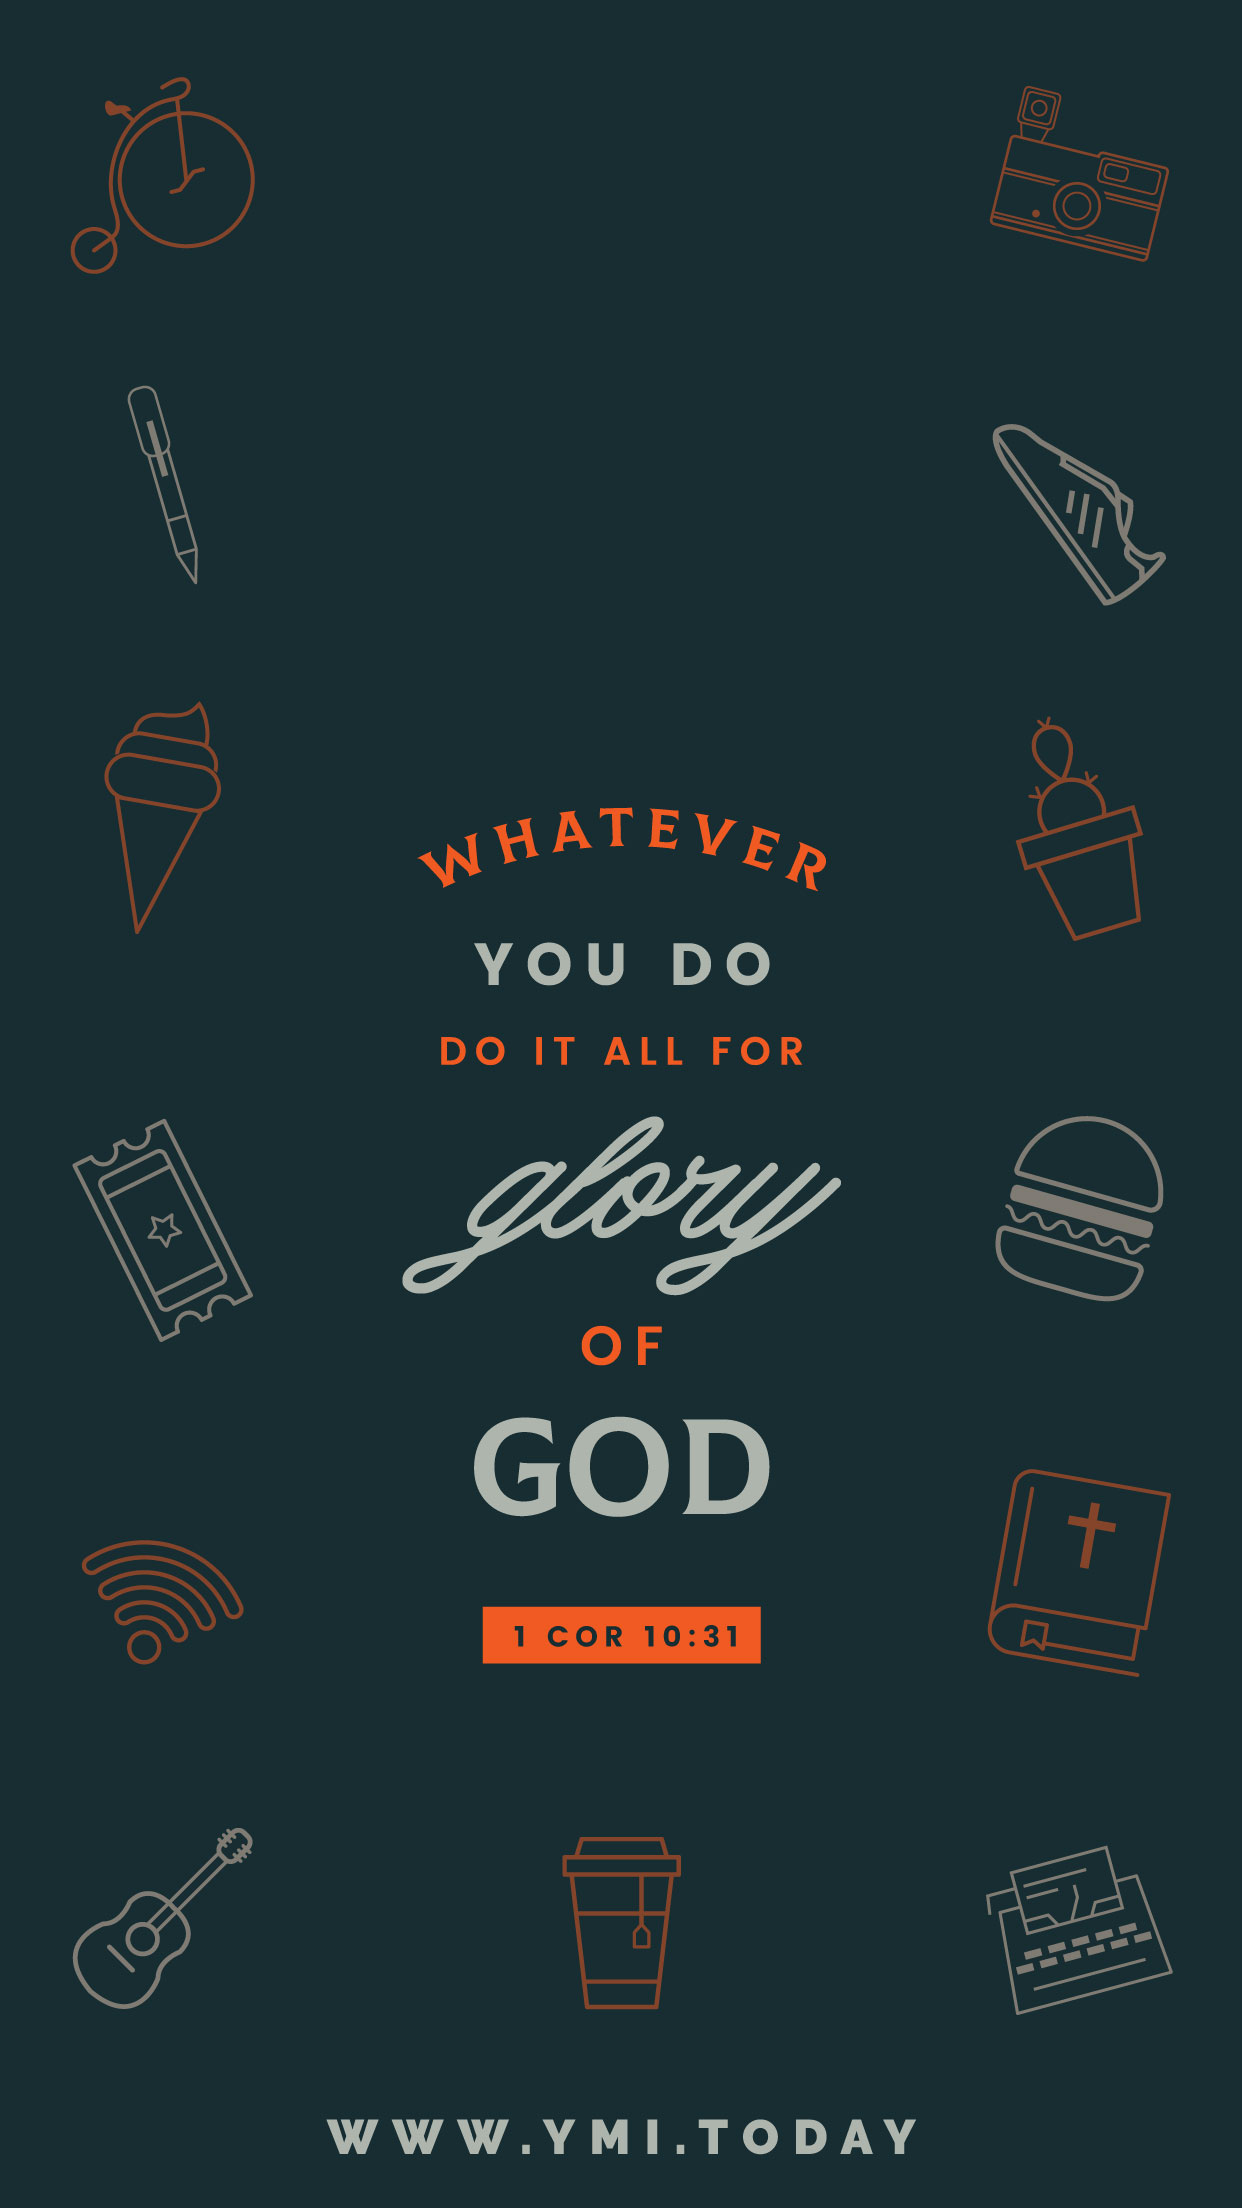 YMI July 2018 Phone Lockscreen - Whatever you do, do it all for the glory of God. - 1 Corinthians 10:31